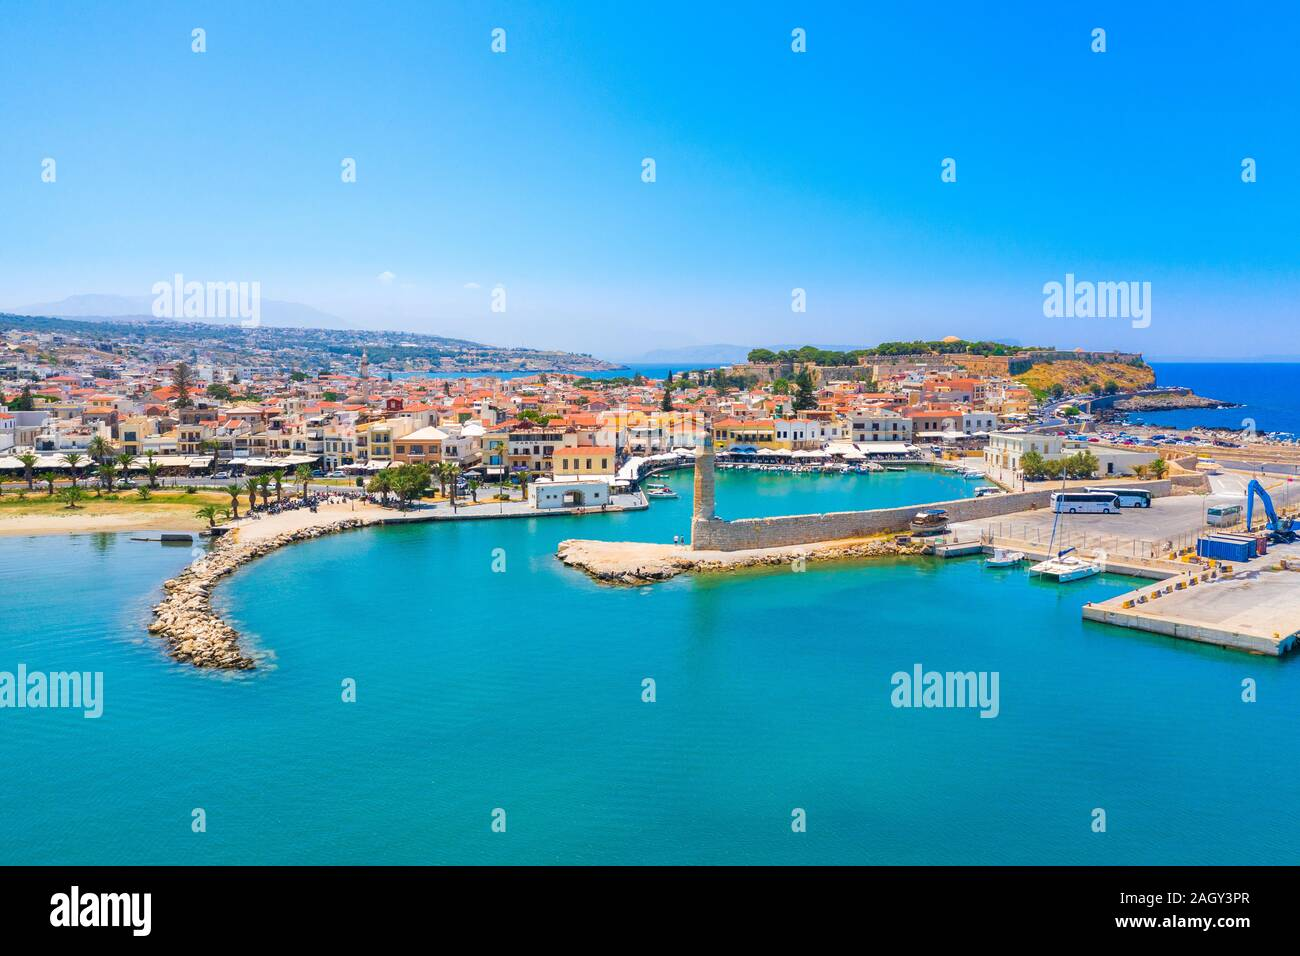 Rethimno city with the fortress of Fortezza and lighthouse, Crete, Greece. Stock Photo